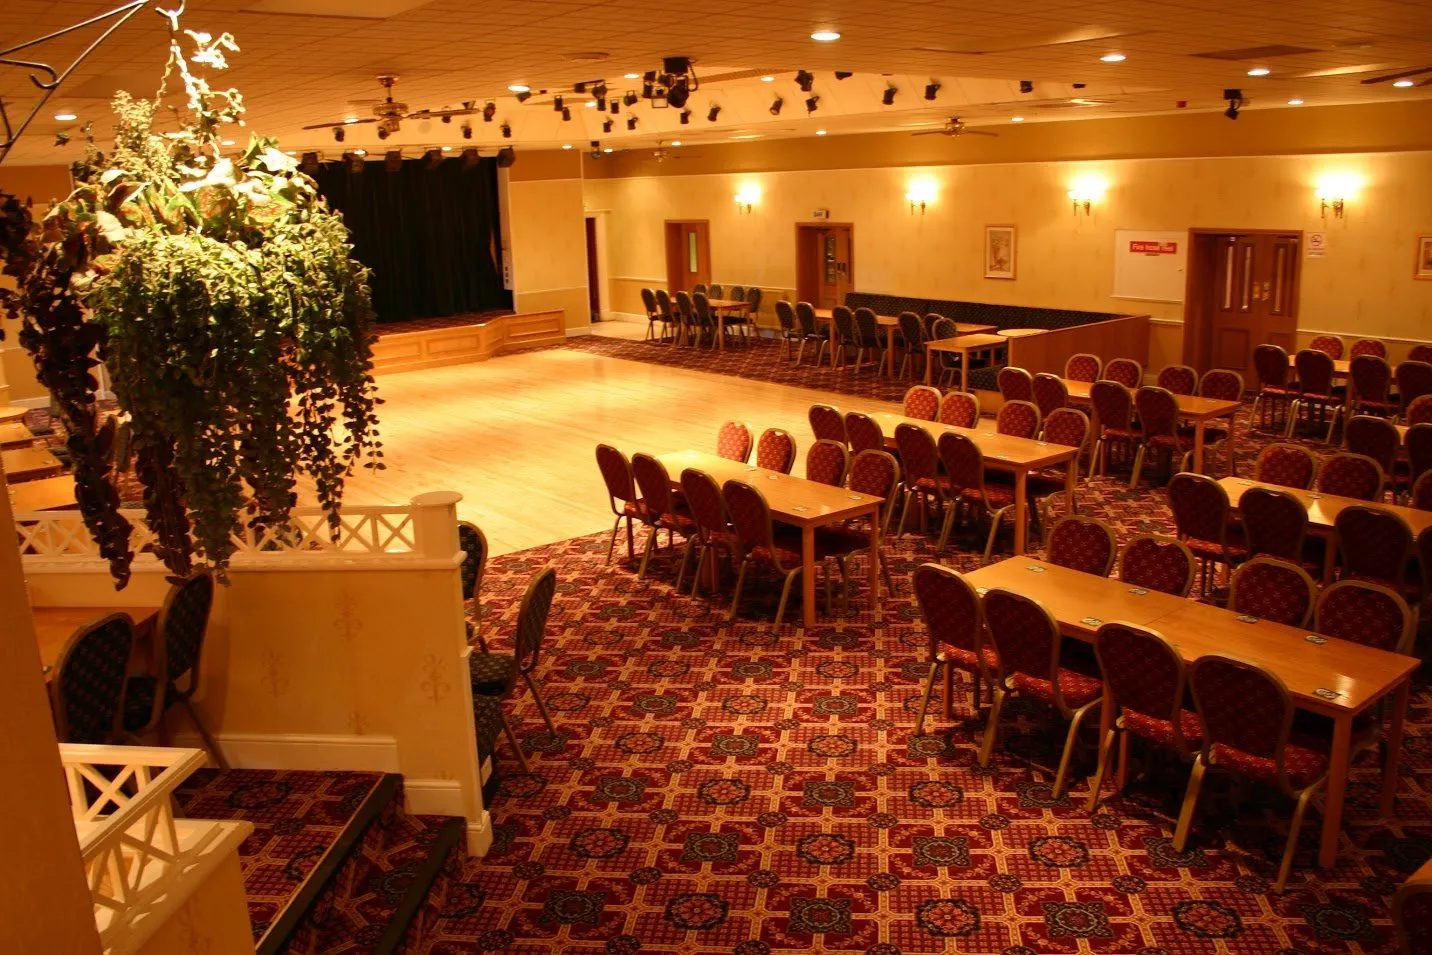 Standard Triumph Club function room with dance floor and long table seating